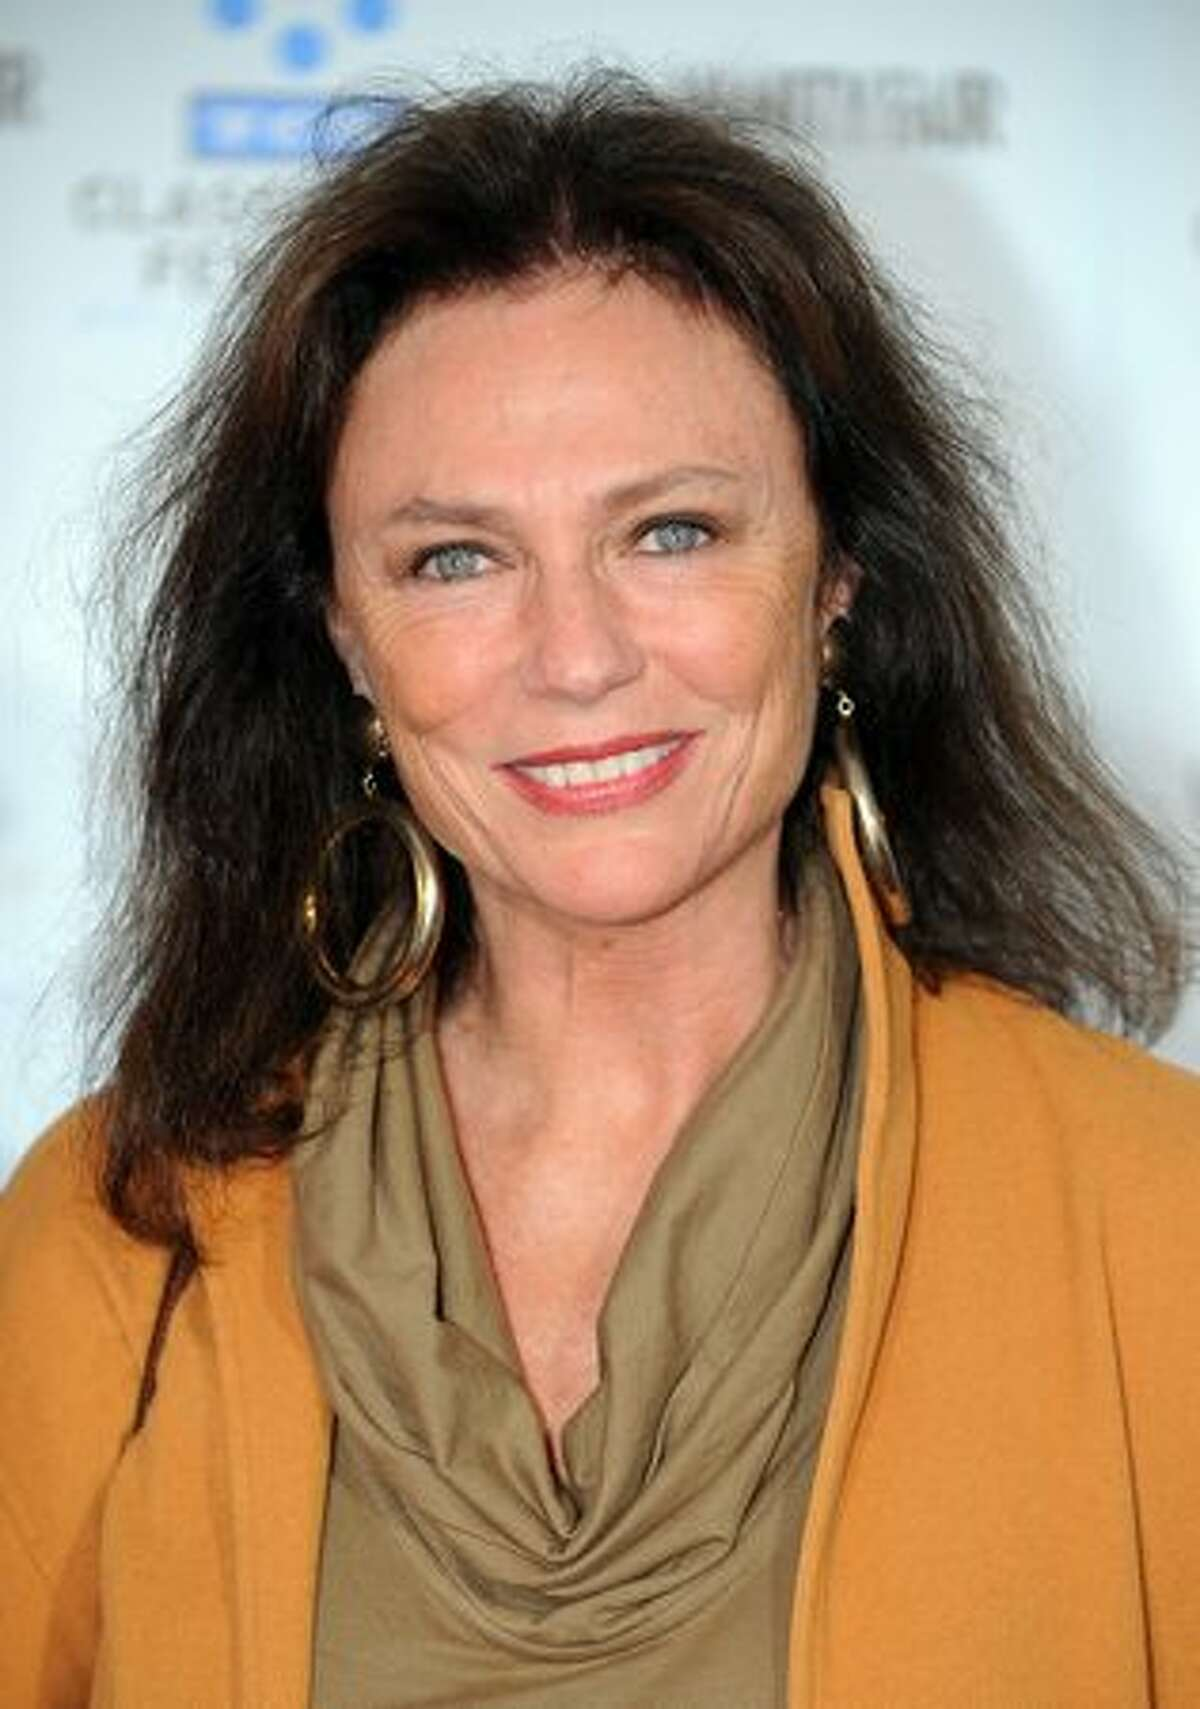 """Actress Jacqueline Bisset arrives at the world premiere of the restored """"A Star is Born"""" during the opening Night Gala of the 2010 TCM Classic Film Festival in Hollywood, California, on April 22, 2010."""